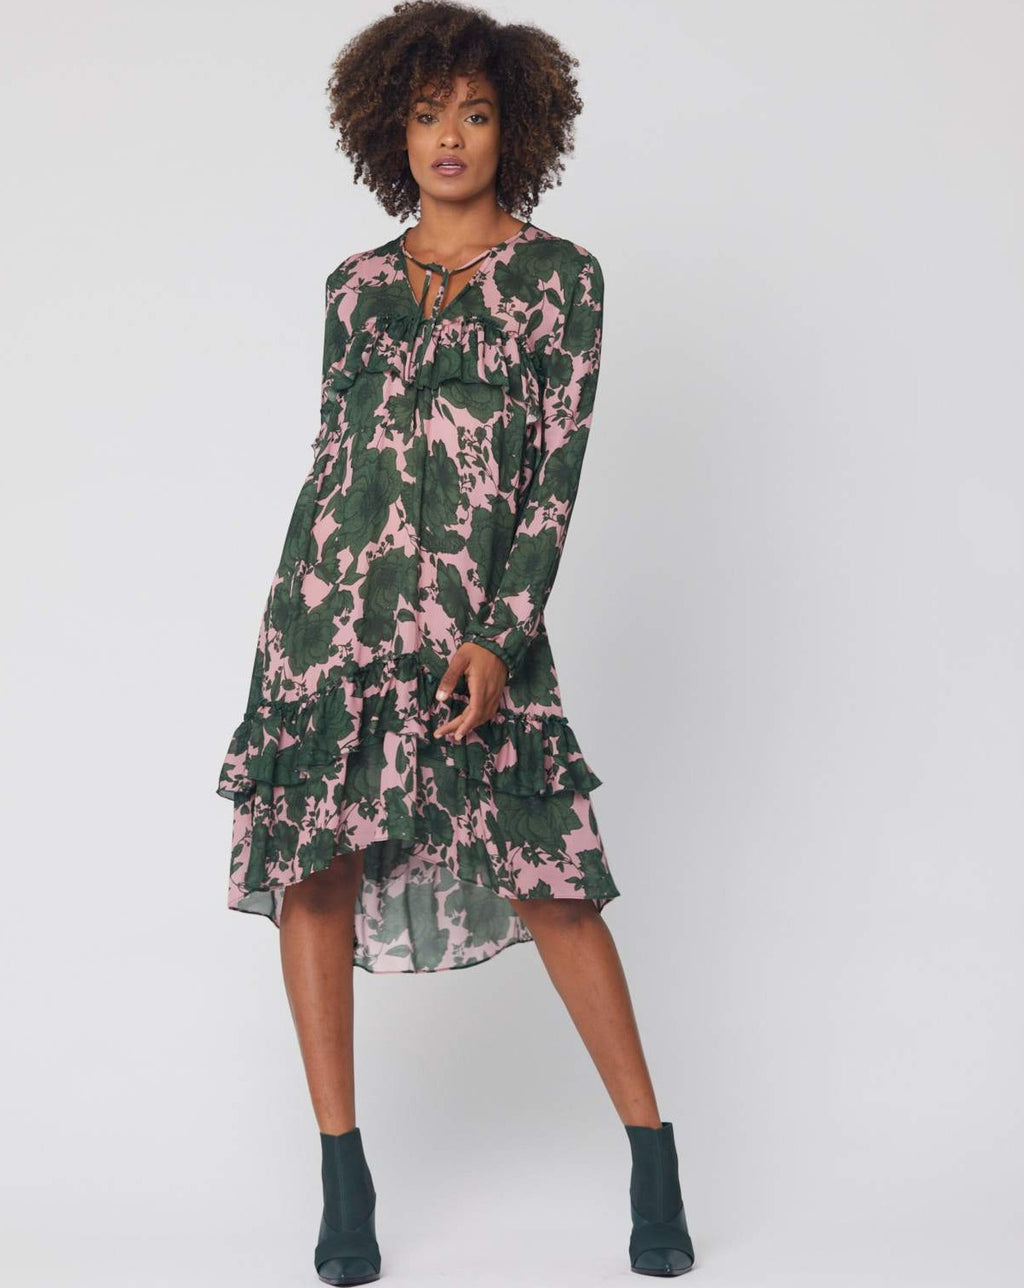 Adley Dress